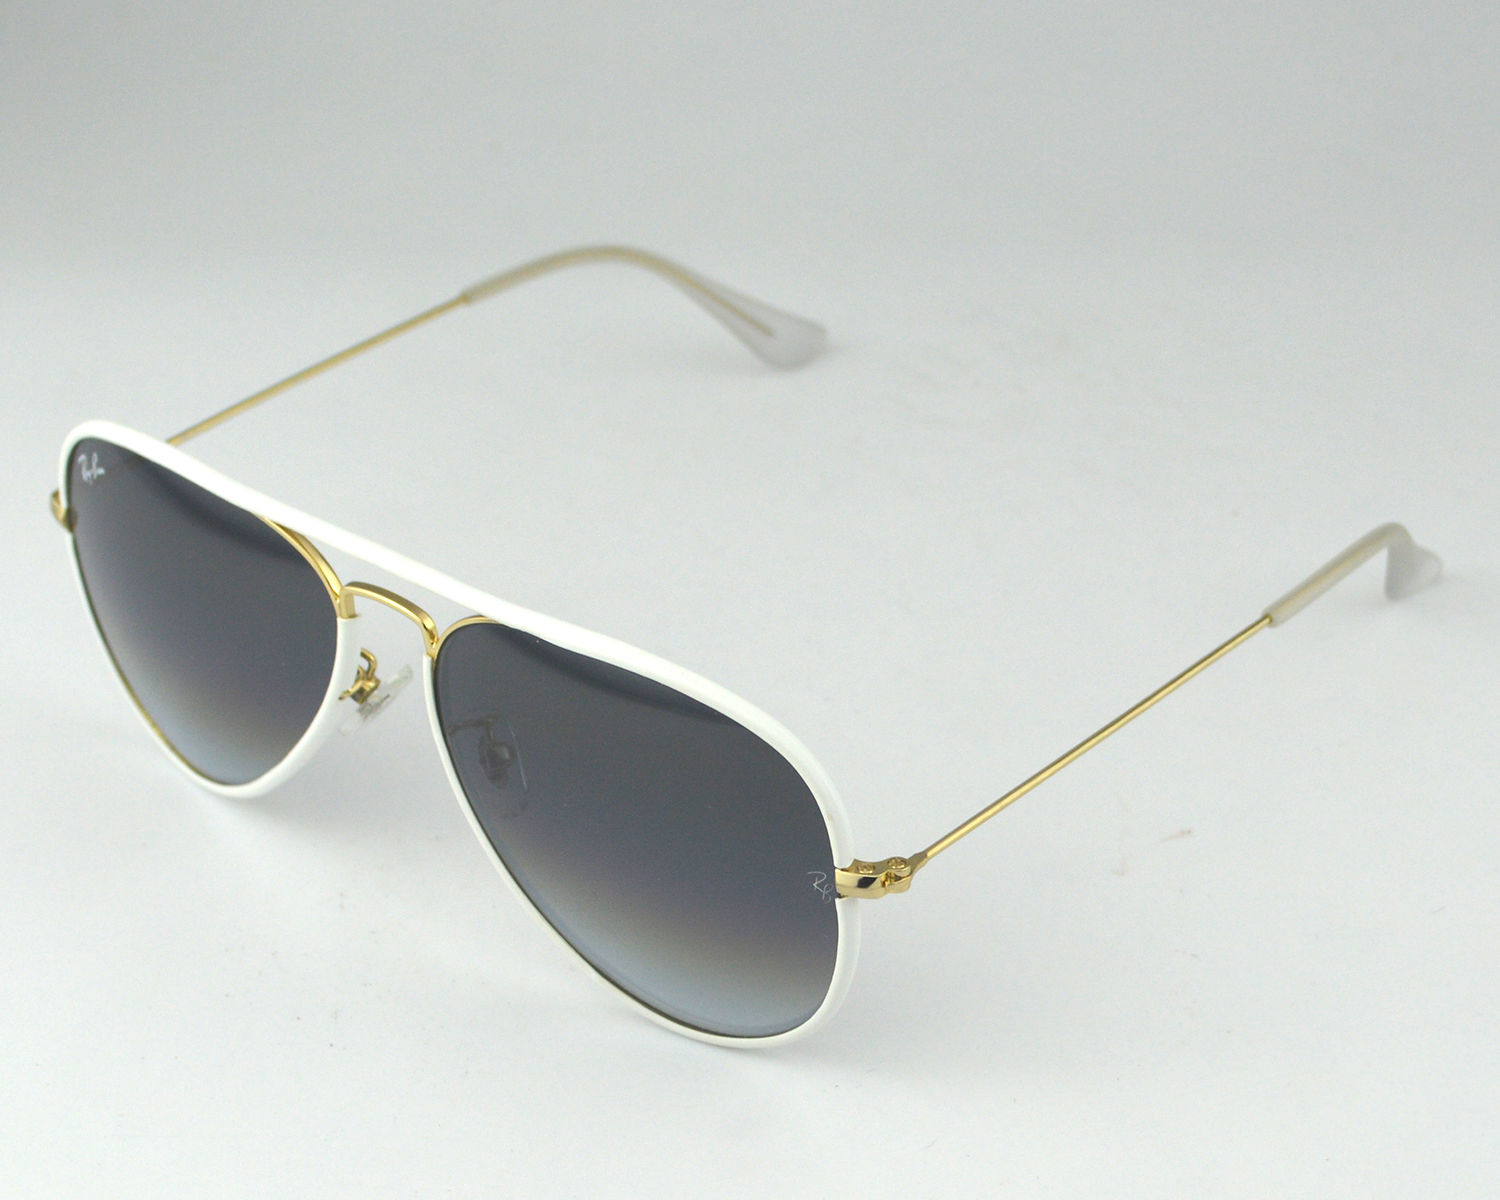 ea9caec50 ... reduced rayban rb3025jm aviator full color 146 32 white gold frame light  grey gradient lenses unisex